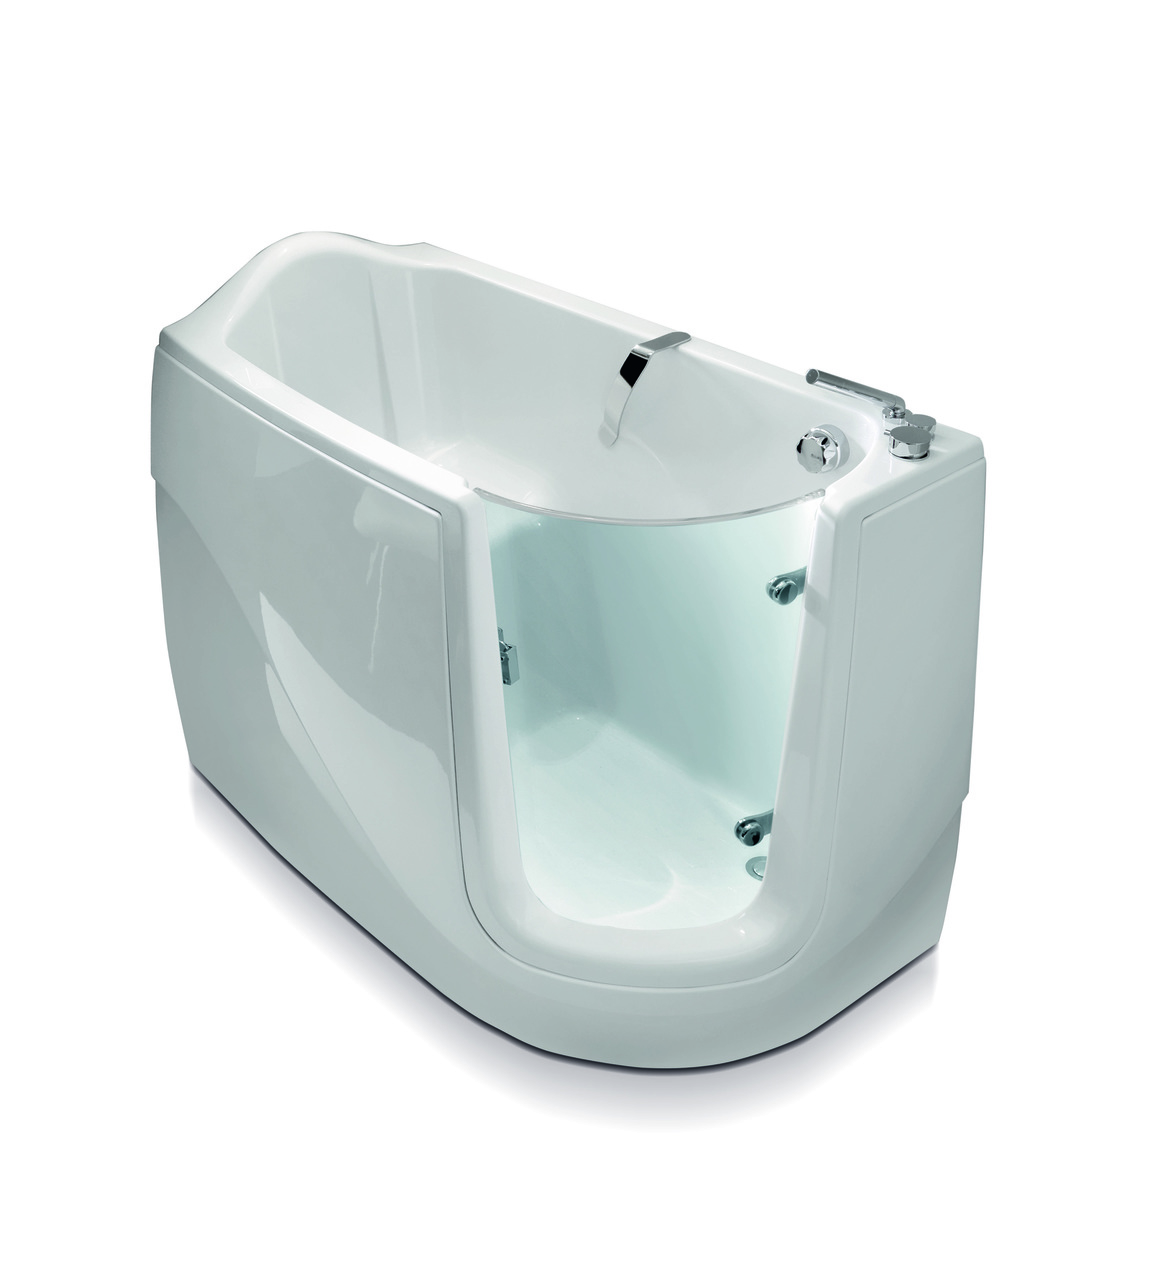 Aquatica Baby Boomer R Walk In Acrylic bathtub web 02